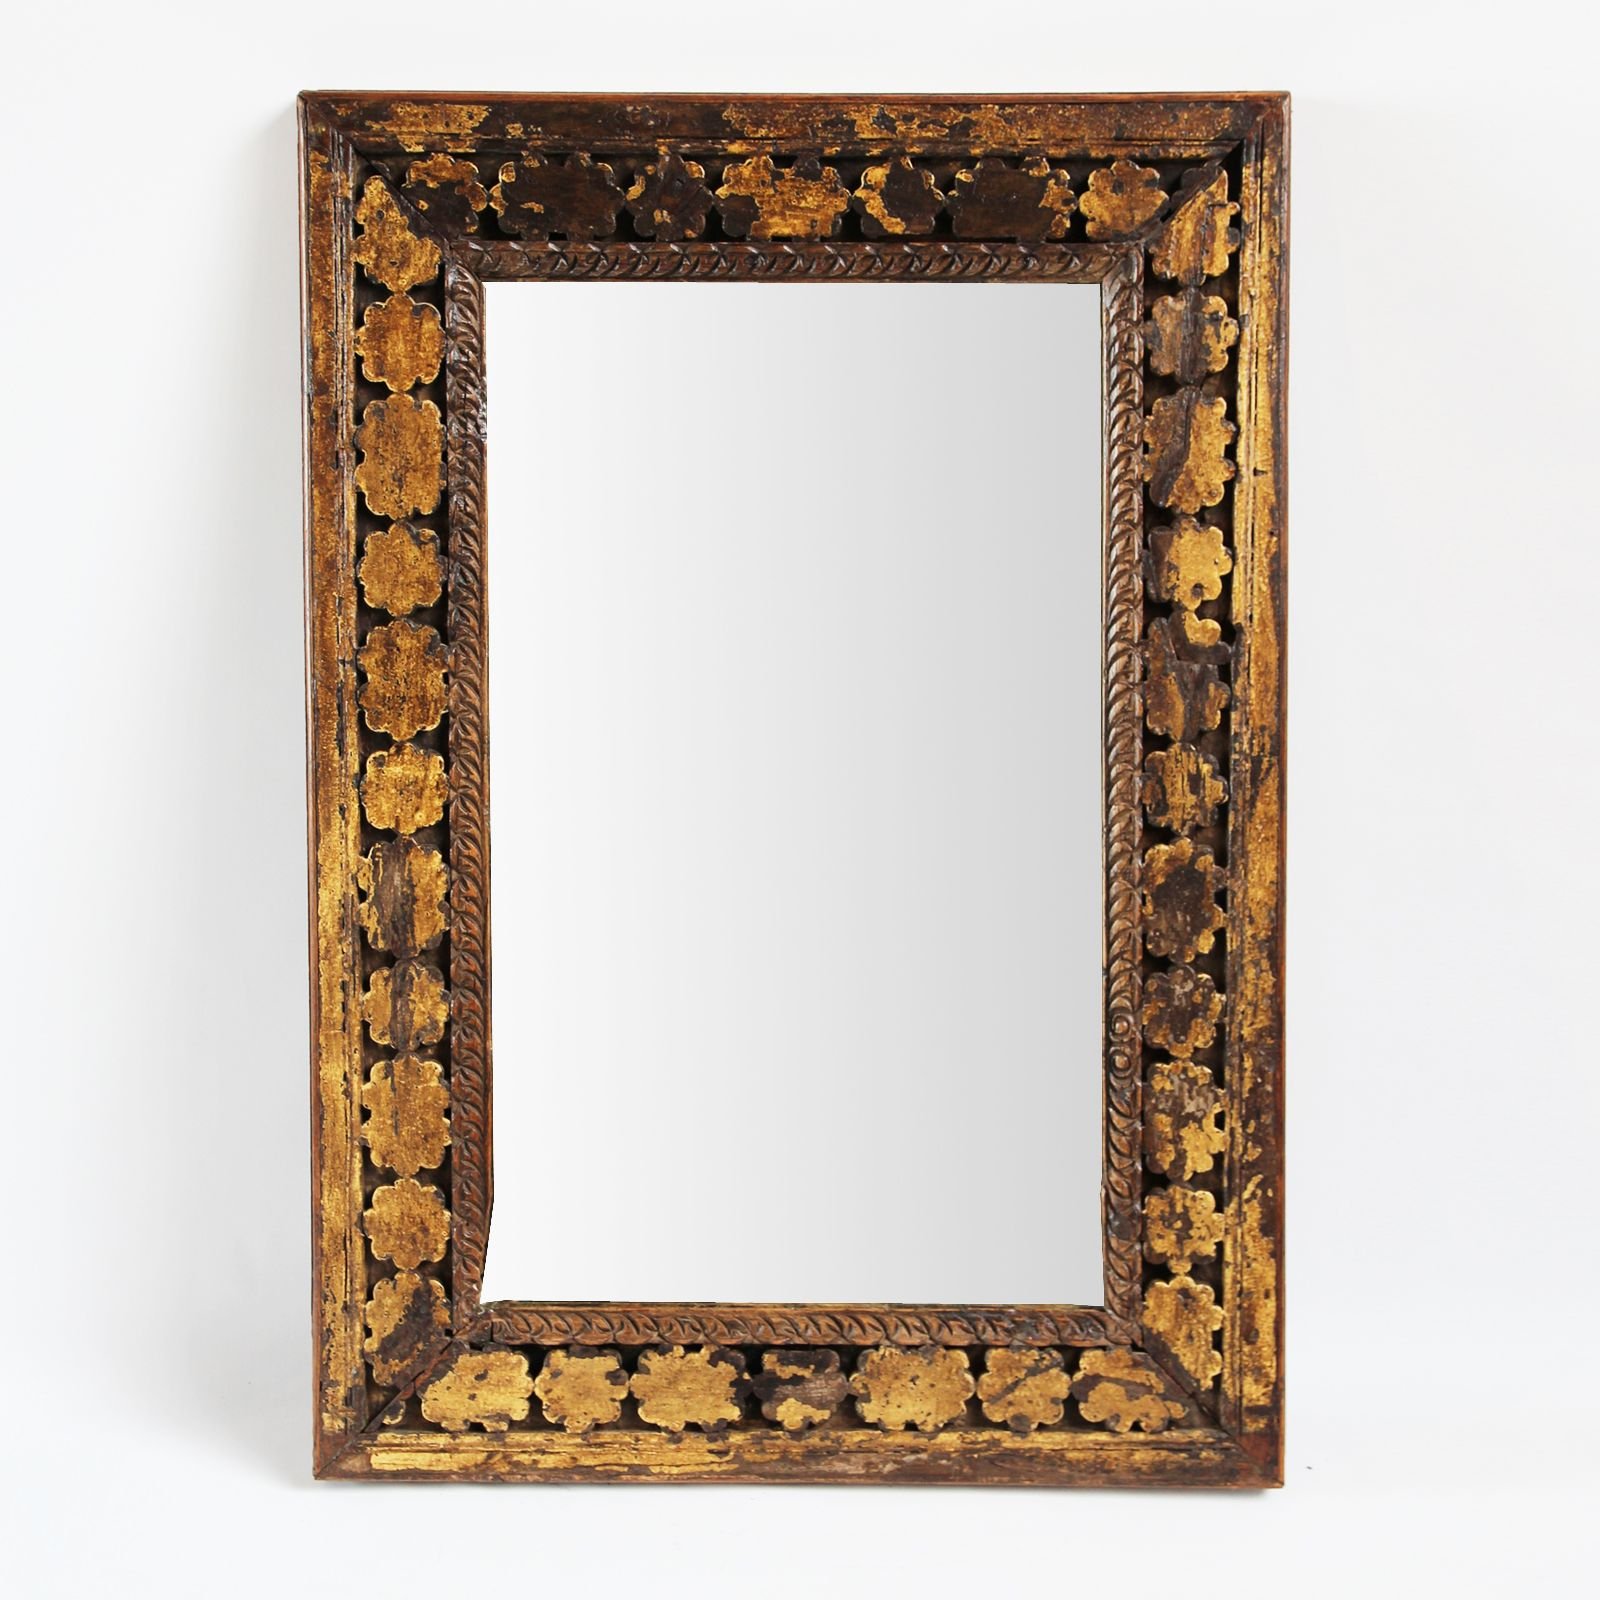 Vintage Carved Wood Architectural Mirror Frame Carved Floral Wood Border With Aged Yellow And White Patina Home De Unique Mirror Frame Unique Mirrors Mirror